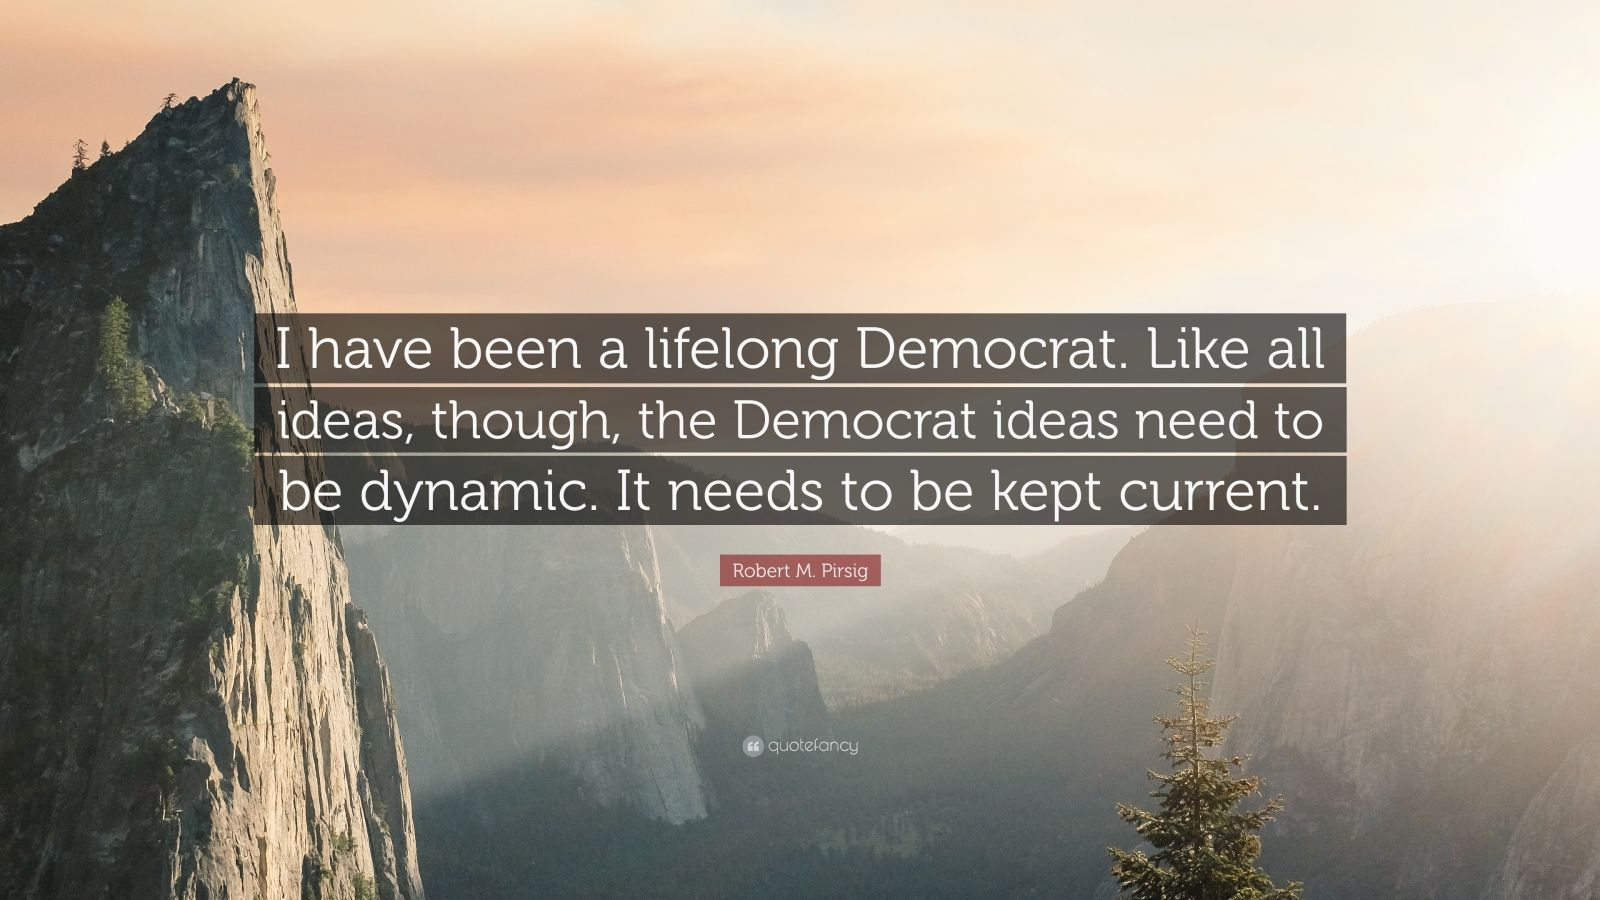 """Robert M. Pirsig Quote: """"I have been a lifelong Democrat. Like all ideas, though, the Democrat ideas need to be dynamic. It needs to be kept current."""""""